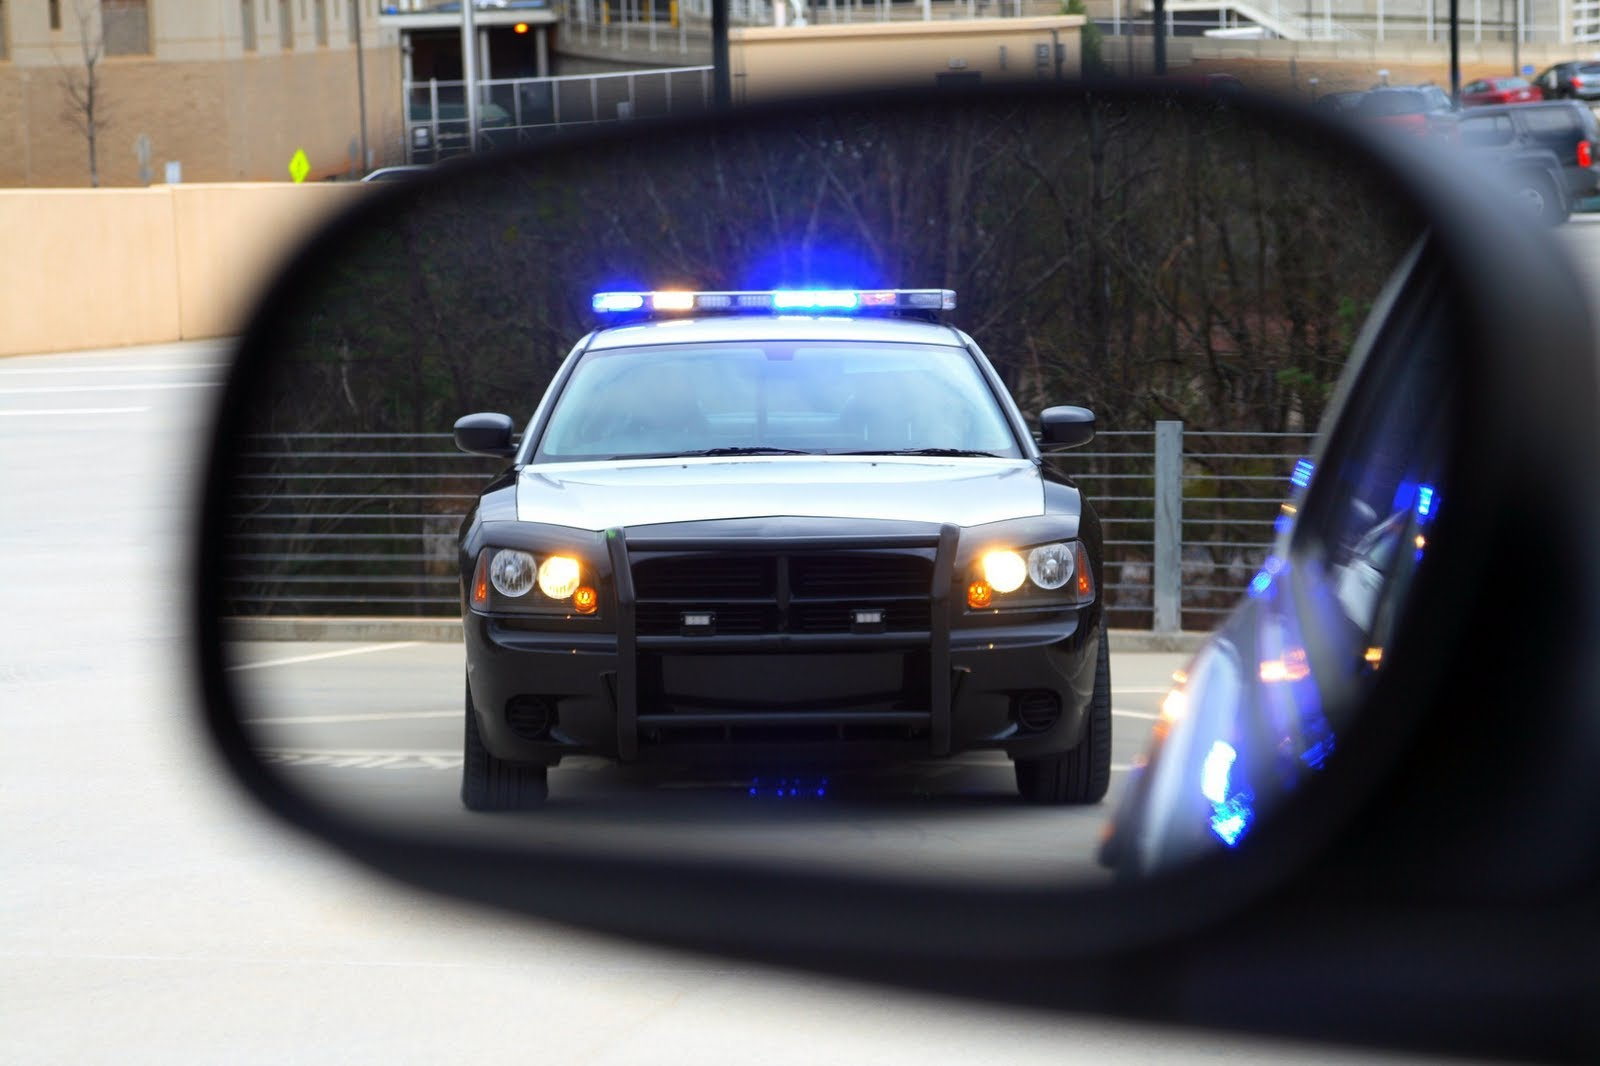 New App: Solomon's Shield Changes the Odds When Encountering Police